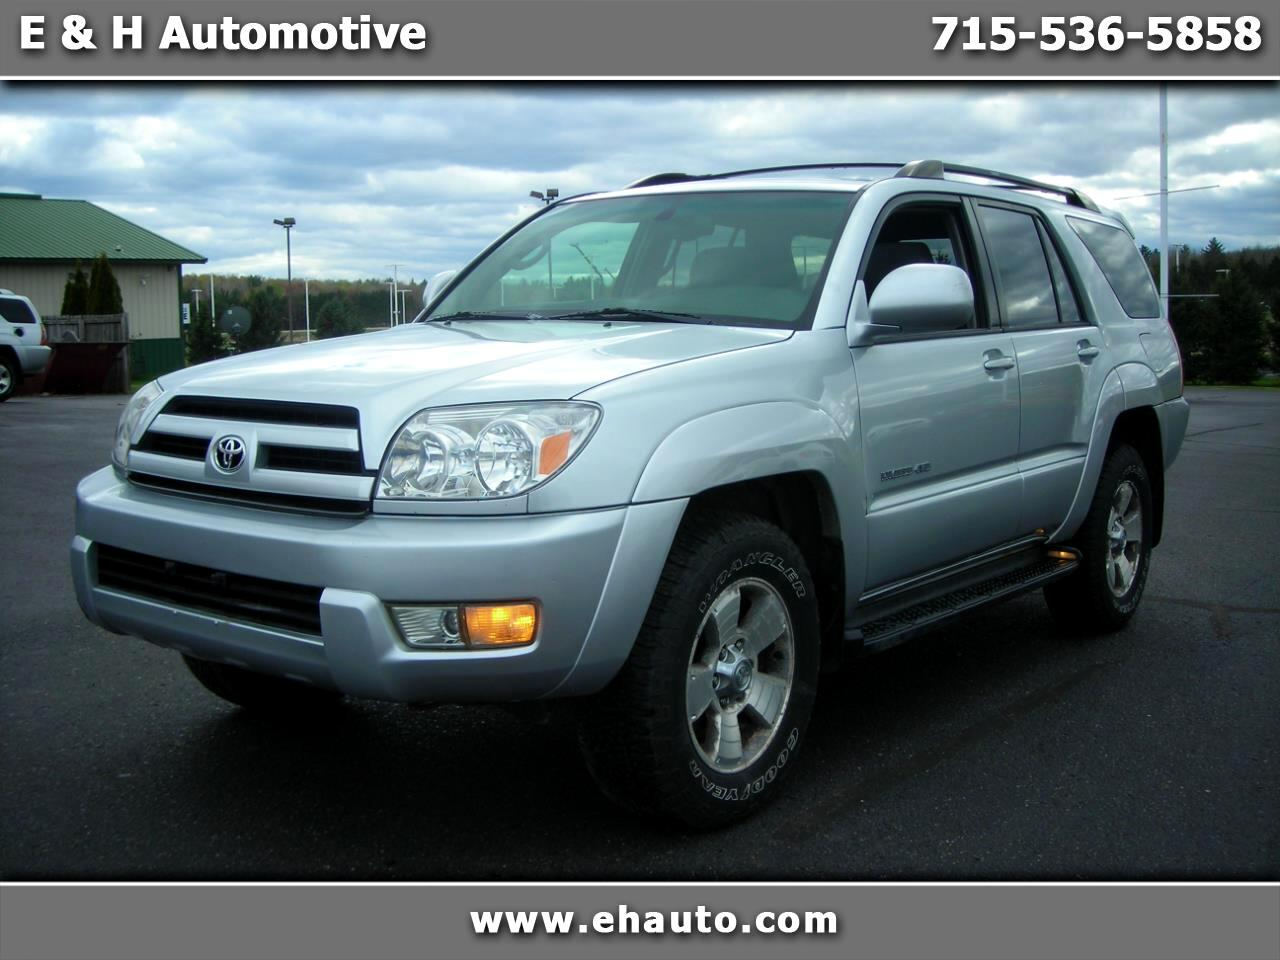 Toyota 4Runner 4dr Limited V6 Auto 4WD (Natl) 2005